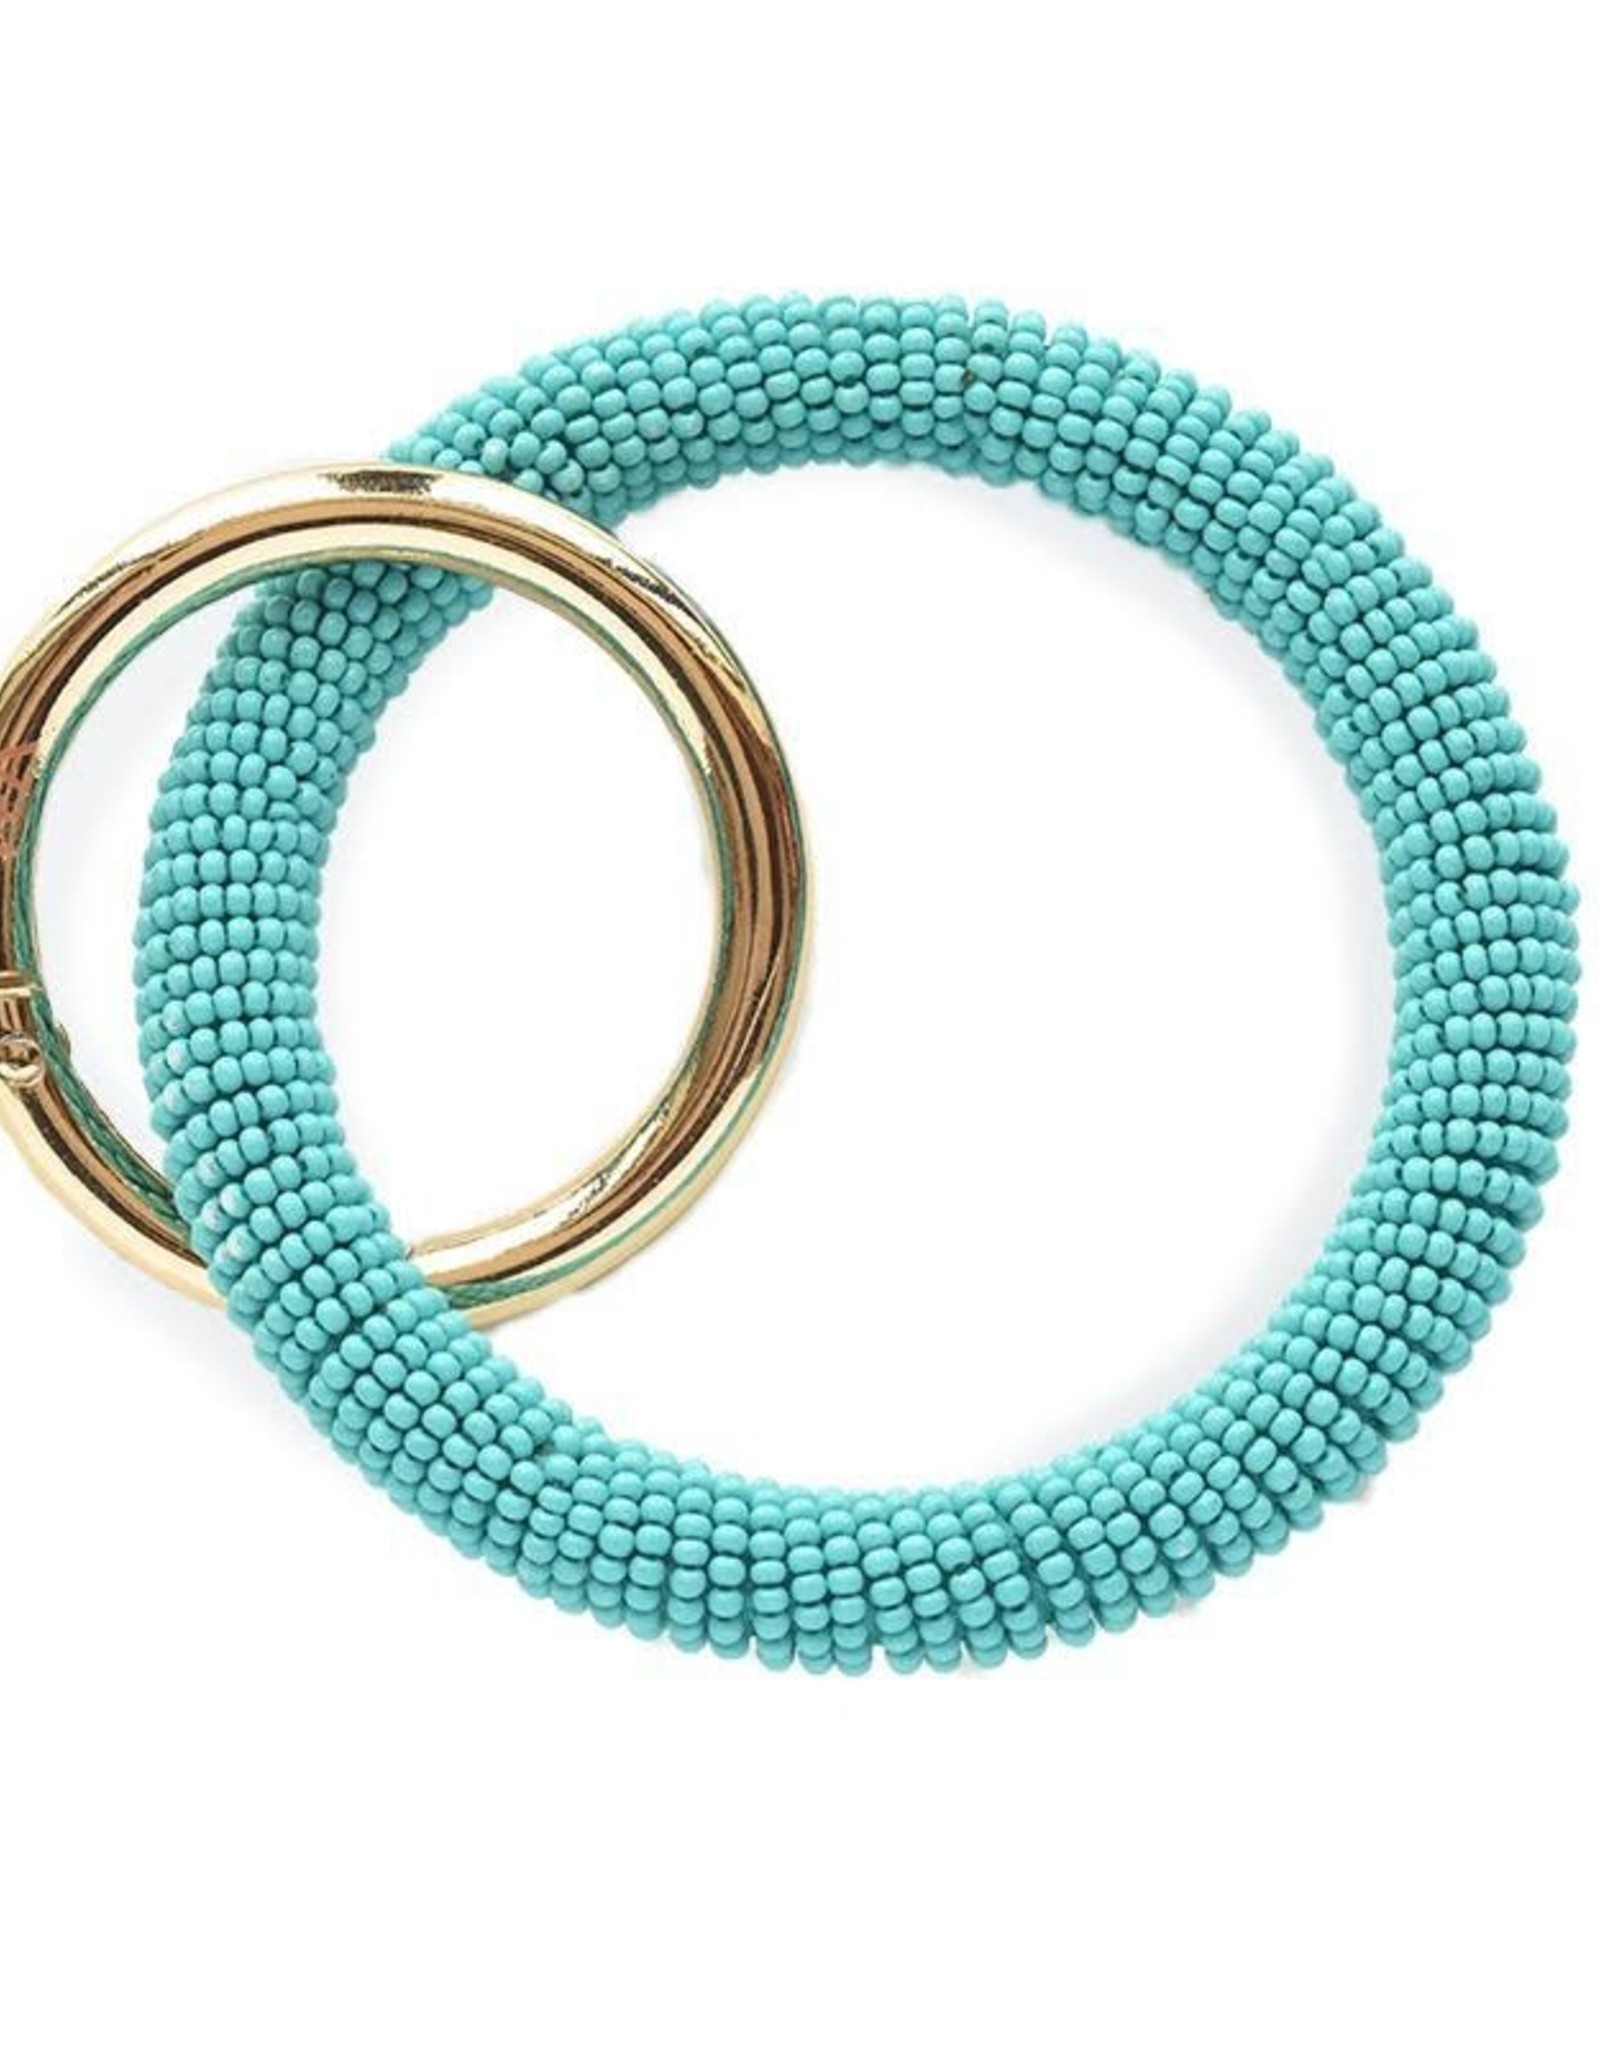 INK + ALLOY Turquoise Seed Bead Key Ring